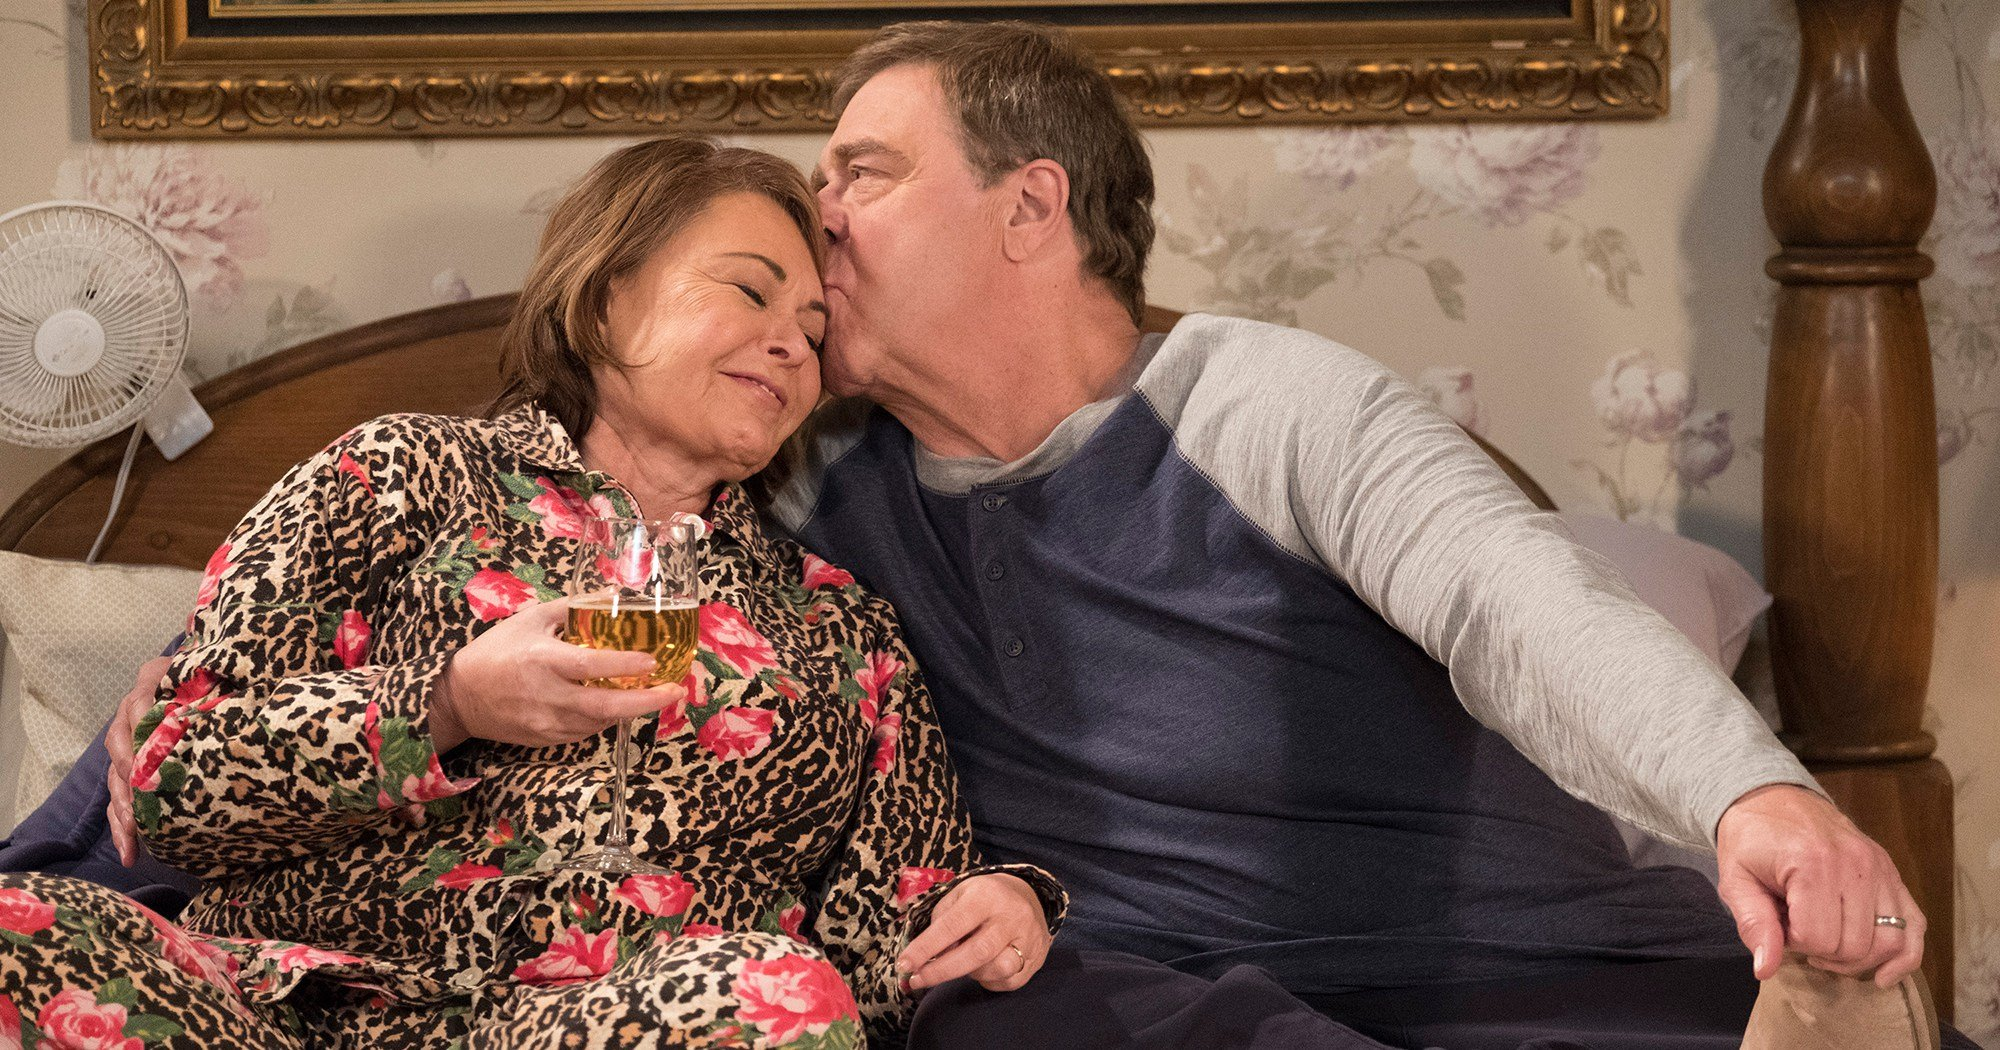 'Roseanne' Finale: Dan and Roseanne Talk About Life After Death